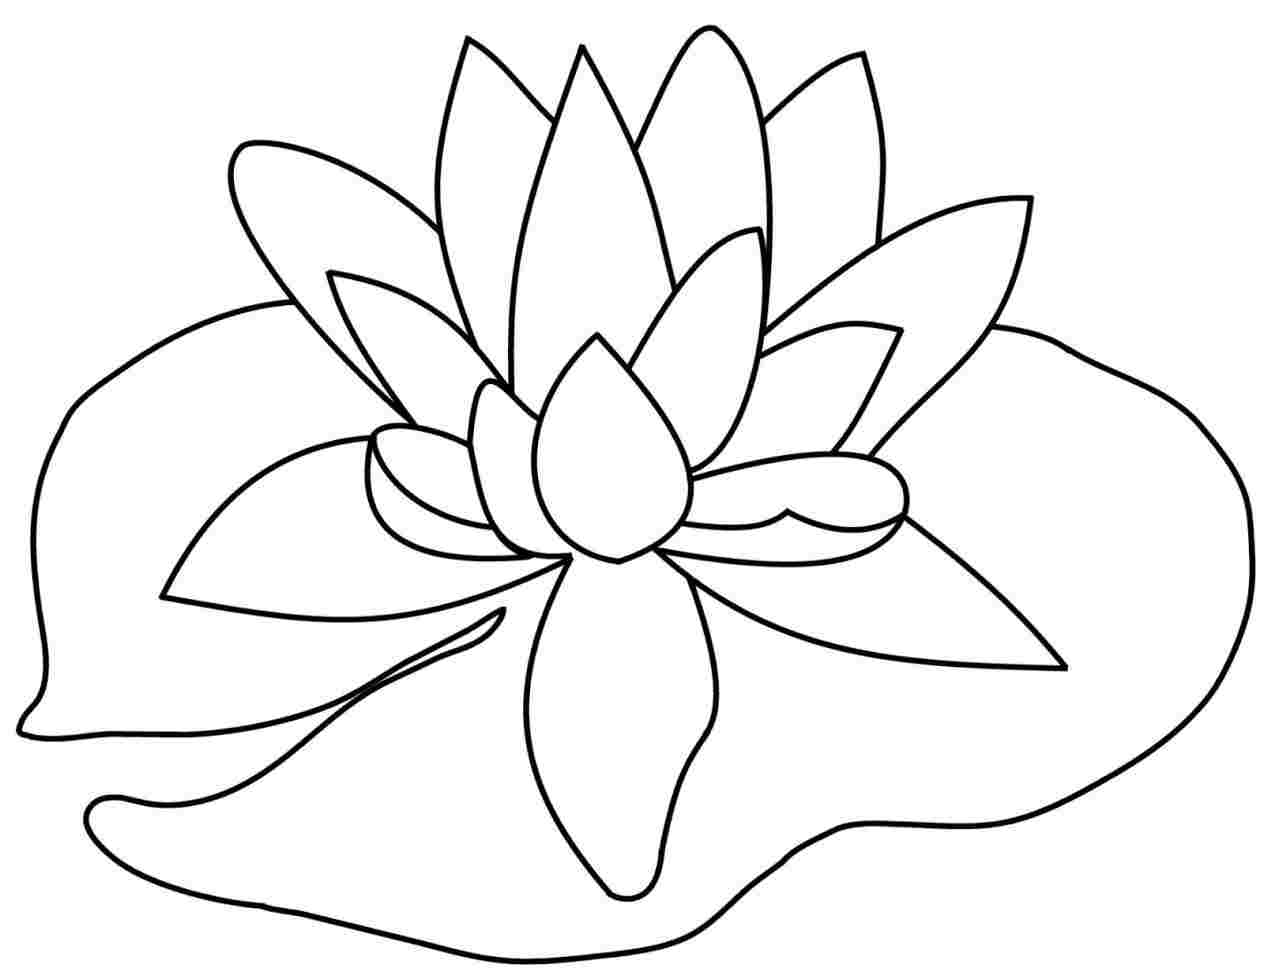 Lily pads drawing